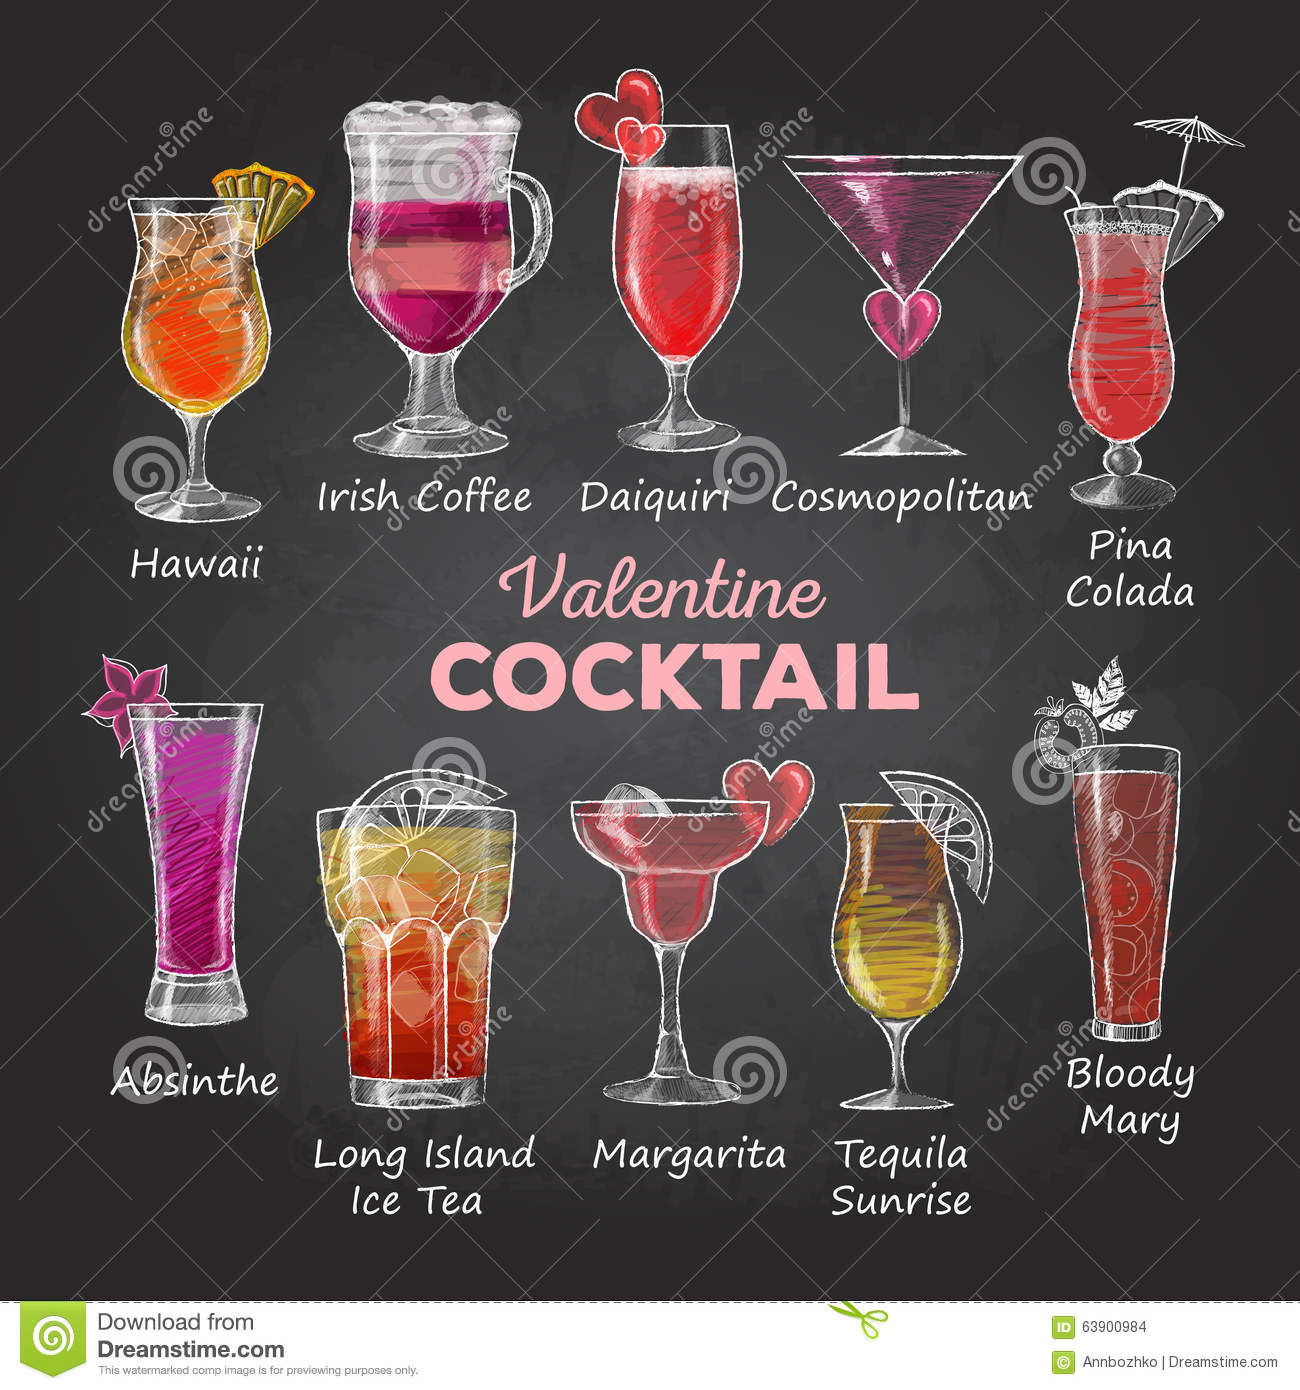 Cocktail Menu Design Free